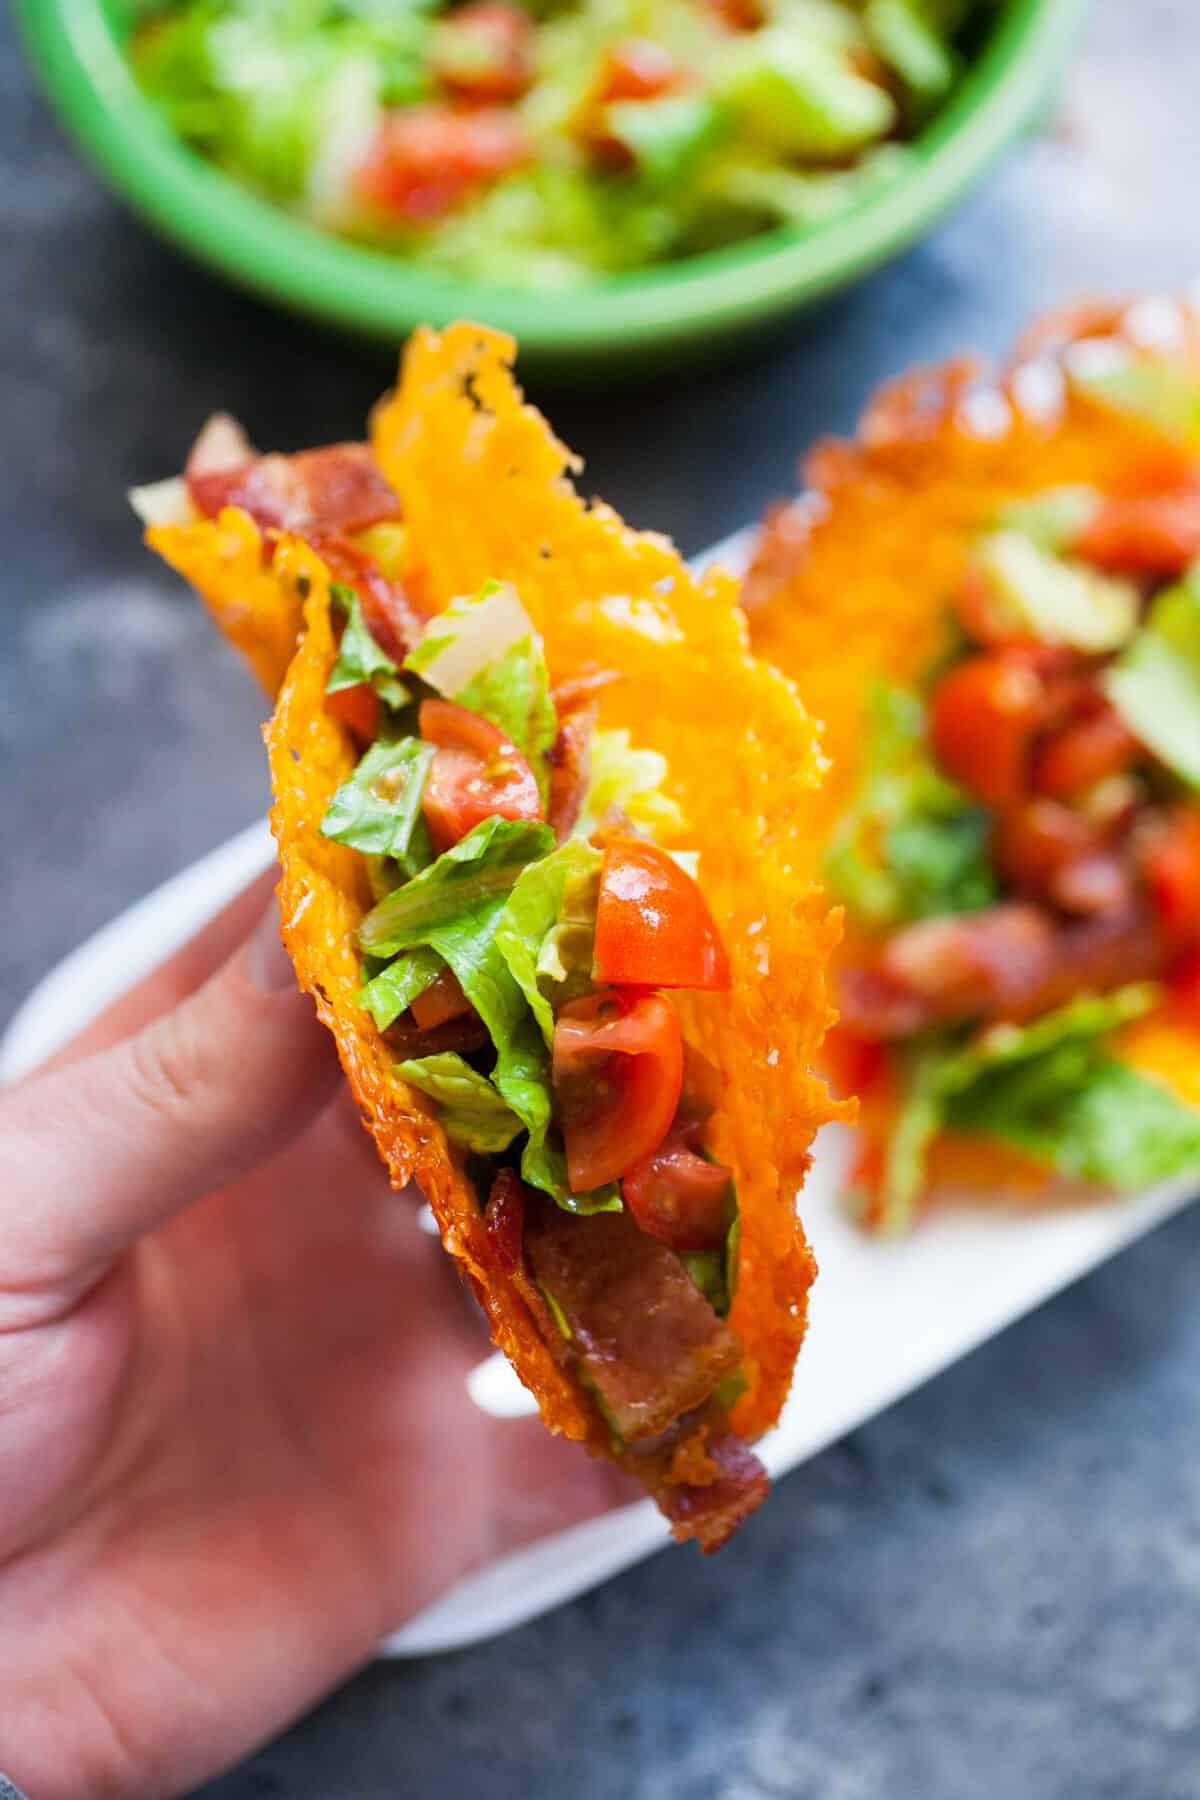 How to Make Cheese Taco Shells: These are a fun change up and great as a party appetizer. Your friends will love it! Keep the fillings light since the shell is made of, well, CHEESE. | macheesmo.com